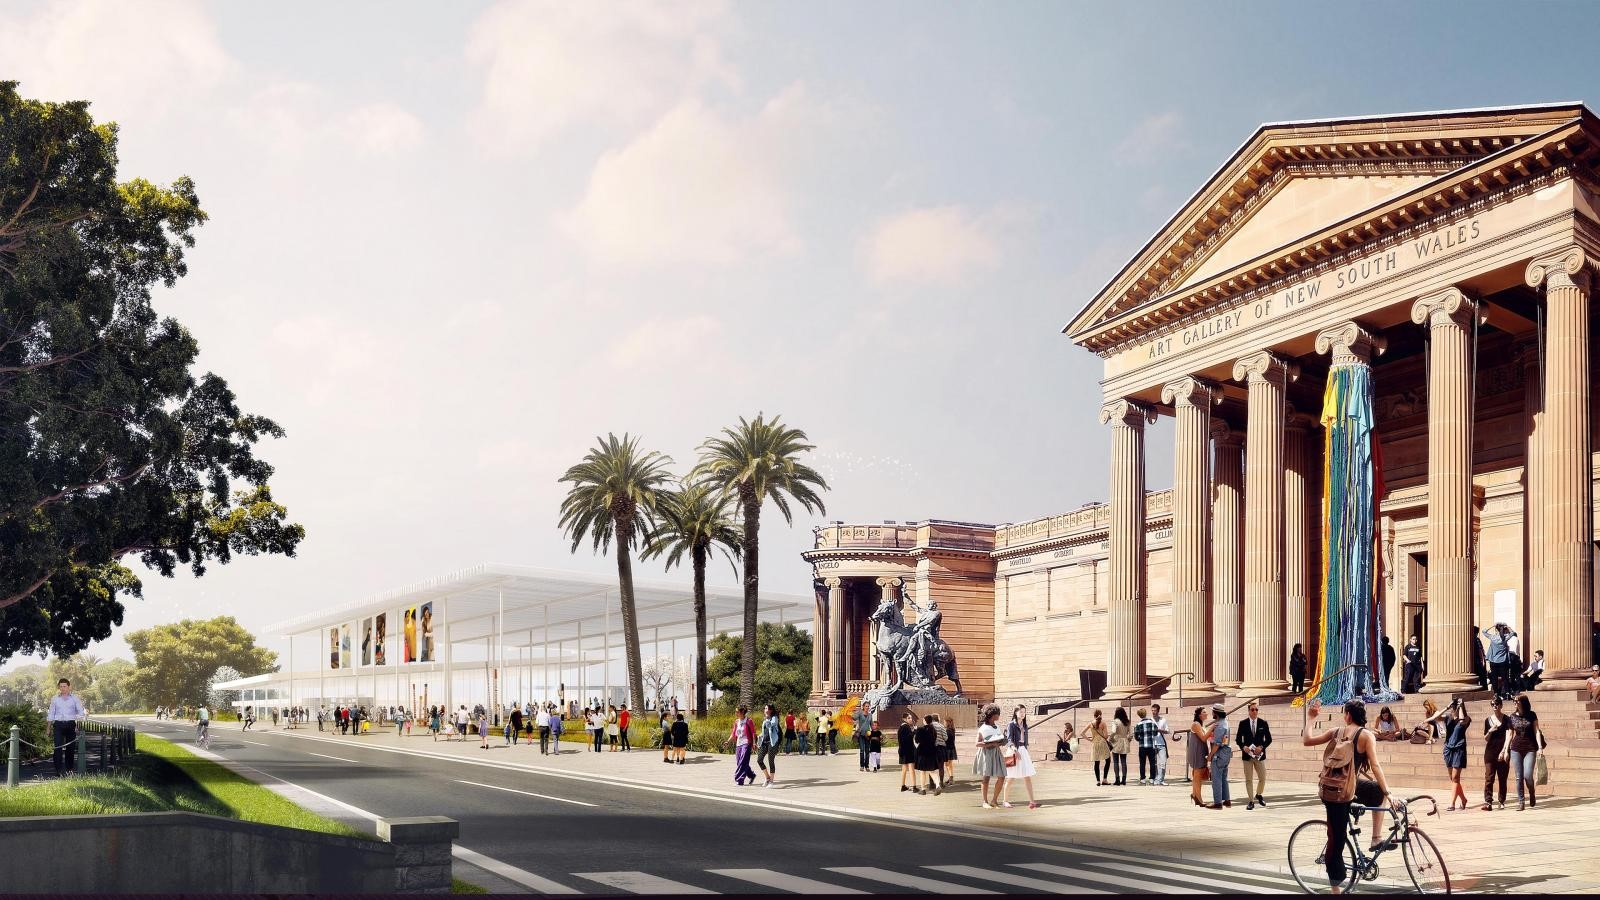 New Images For Art Gallery Of South Wales Expansion In Sydney revealed by SANAA - Sheet5